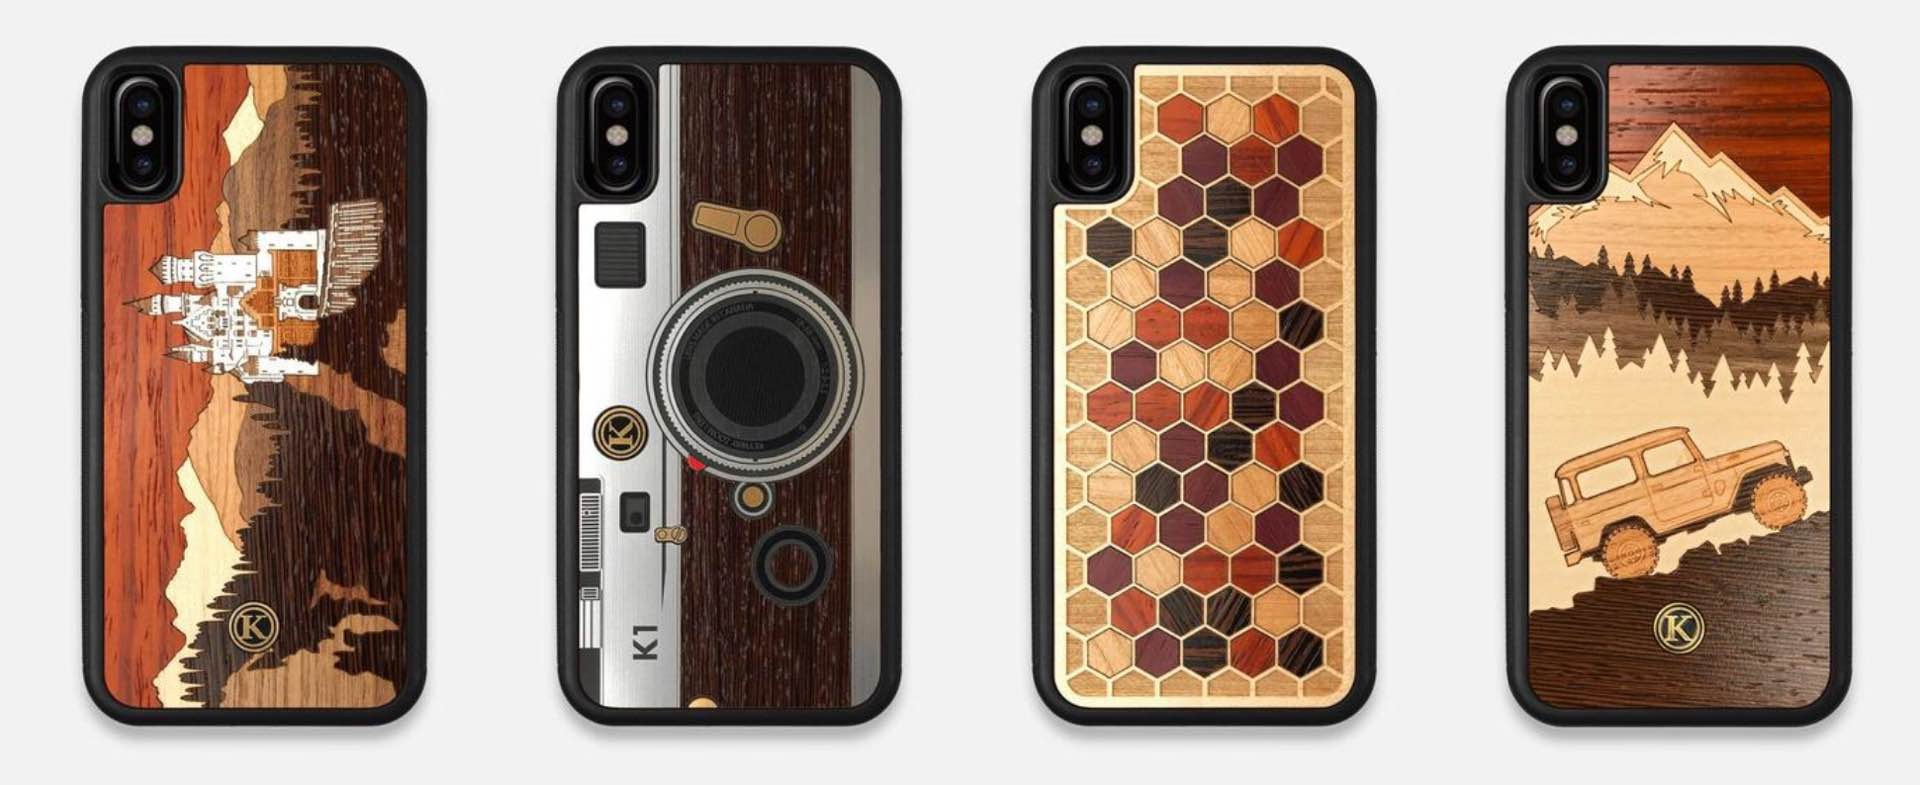 keyway-designs-wooden-cases-iphone-xs